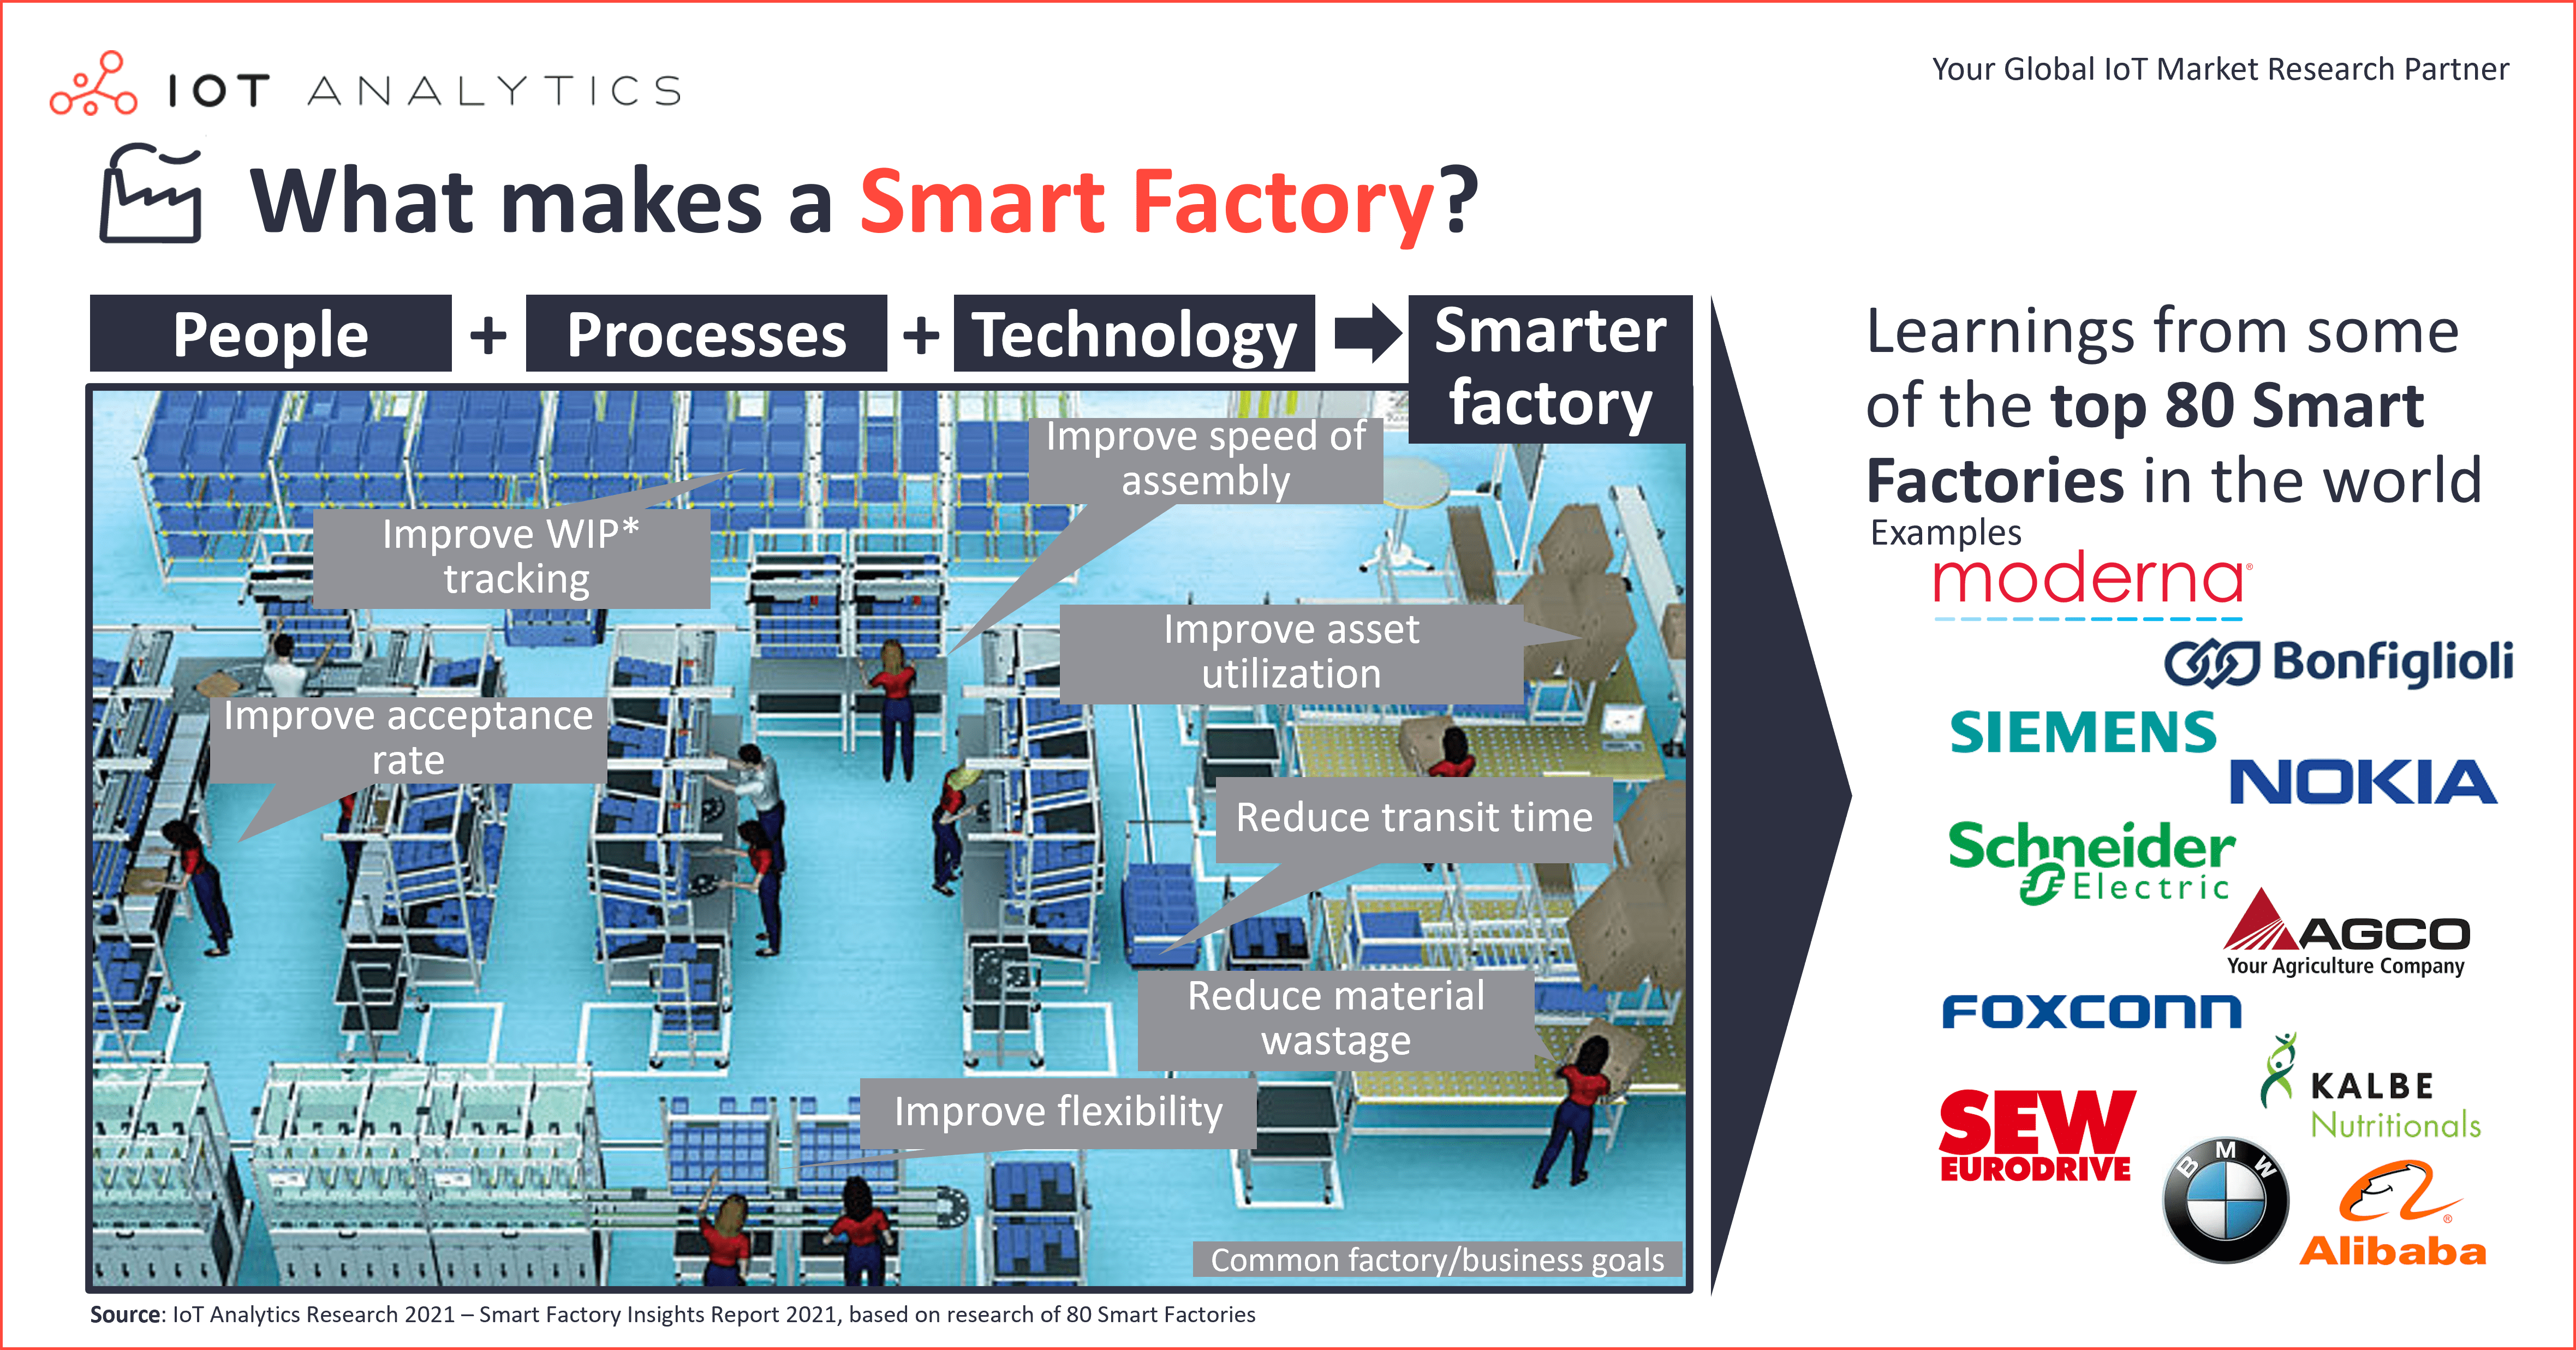 What makes smart factories